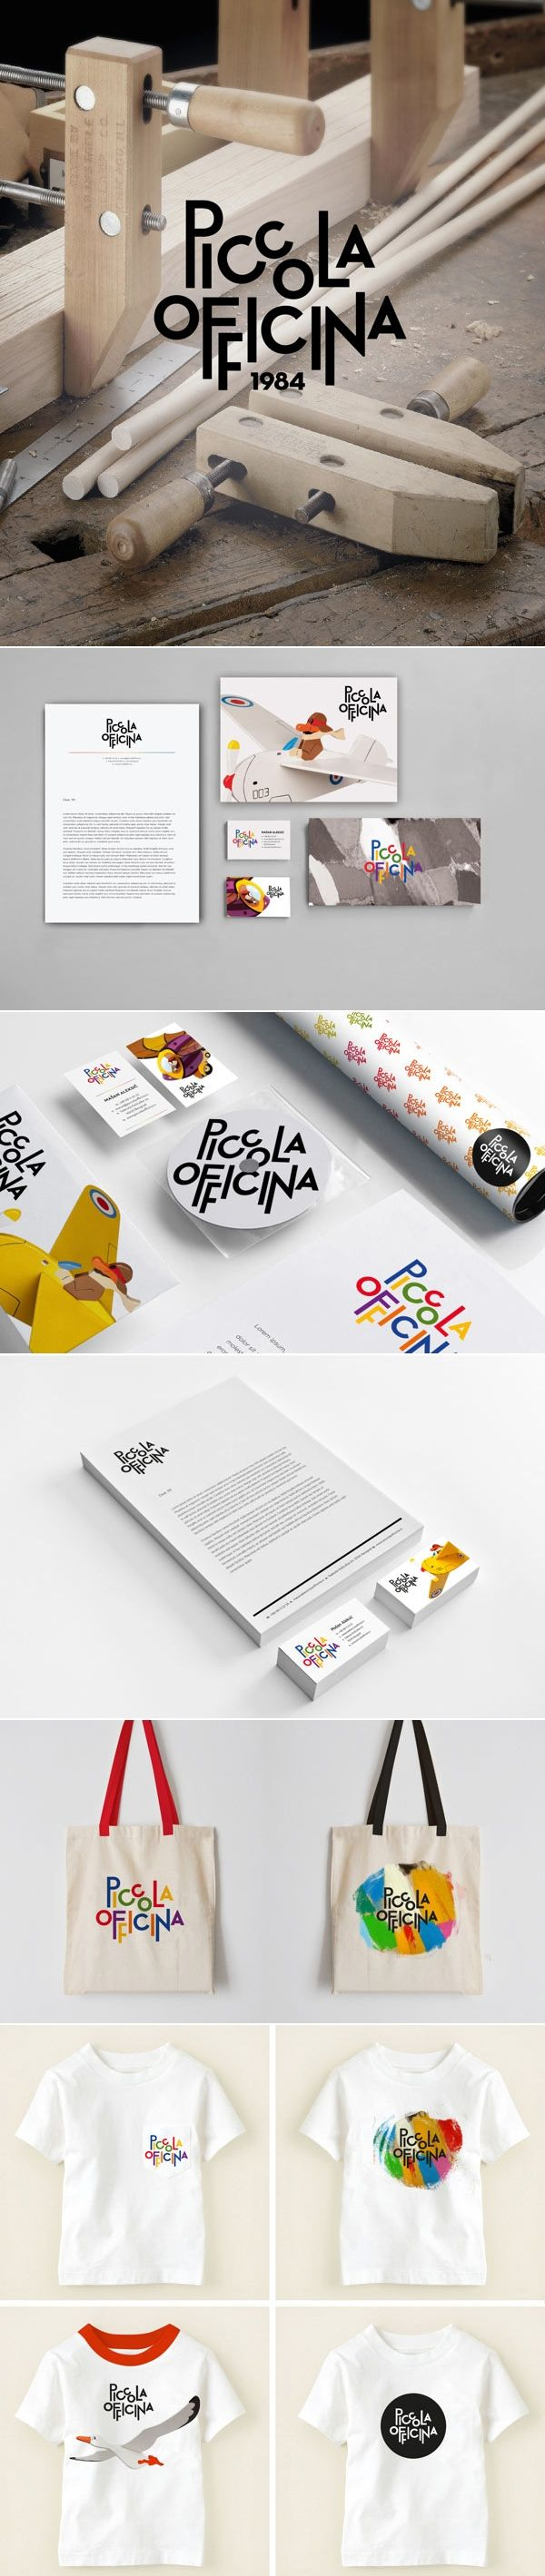 Piccola Officina #identity #packaging #branding PD